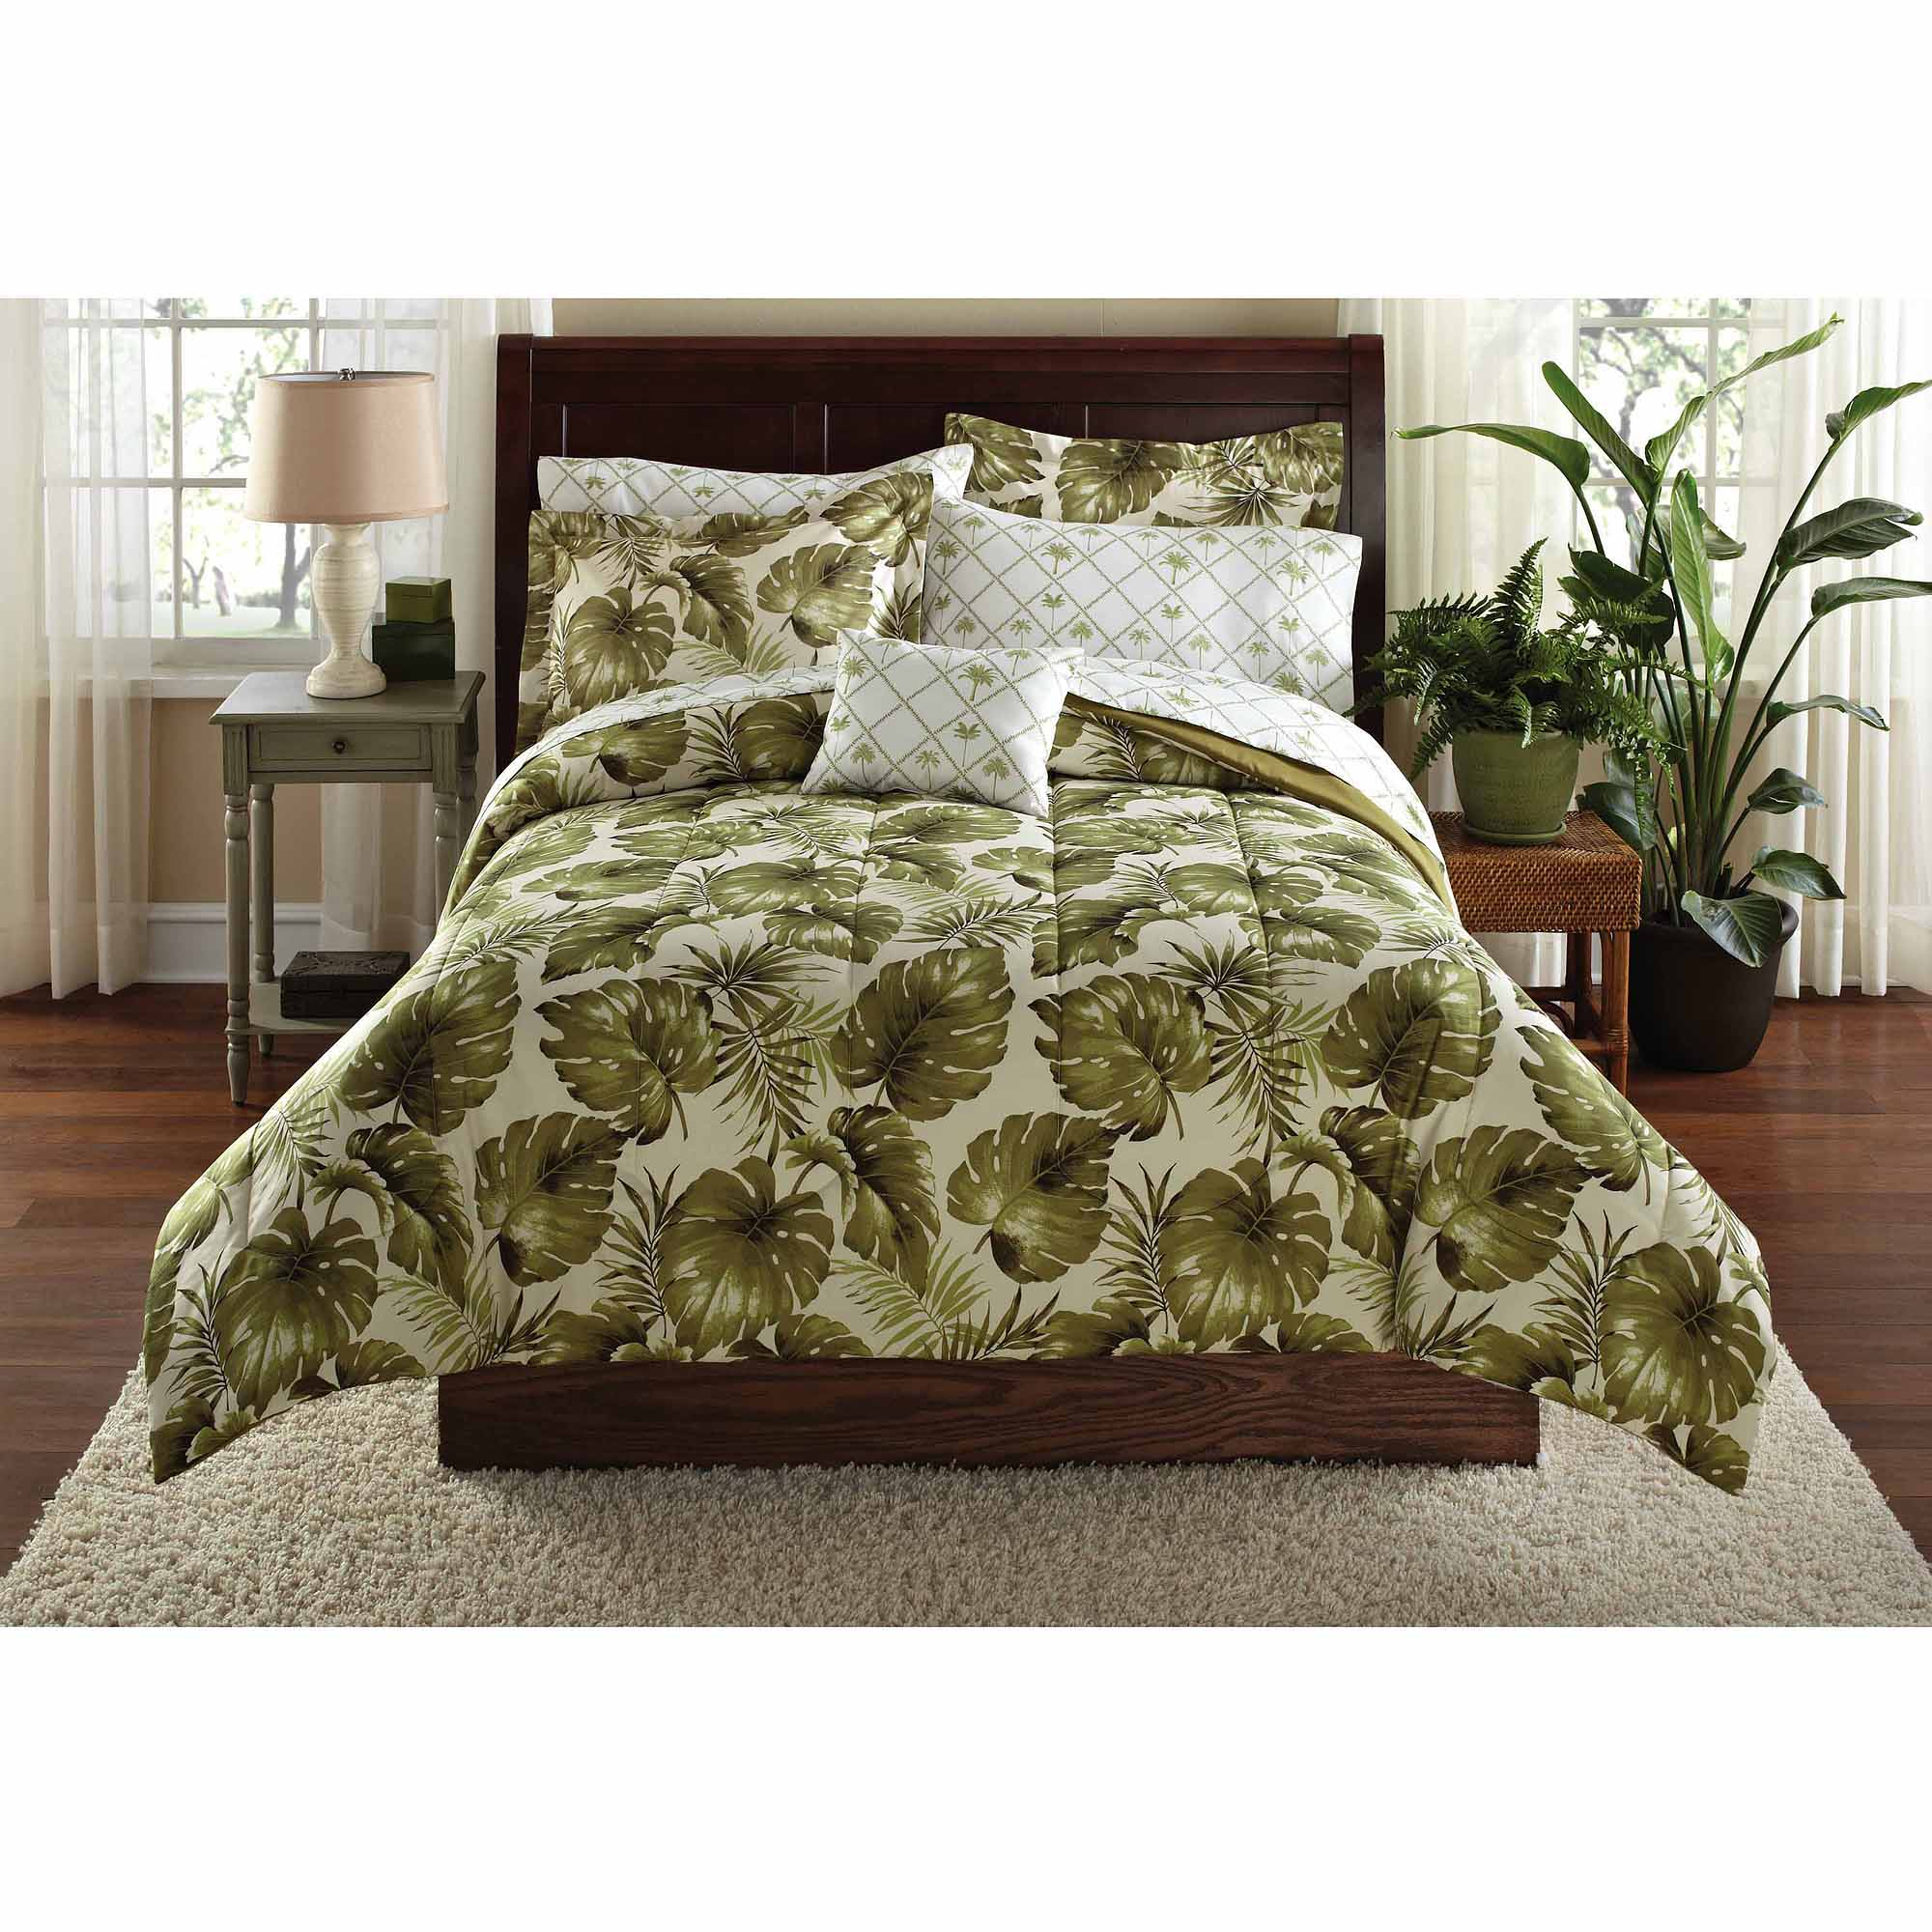 Mainstays Palm Grove Bed in a Bag Coordinated Bedding Set